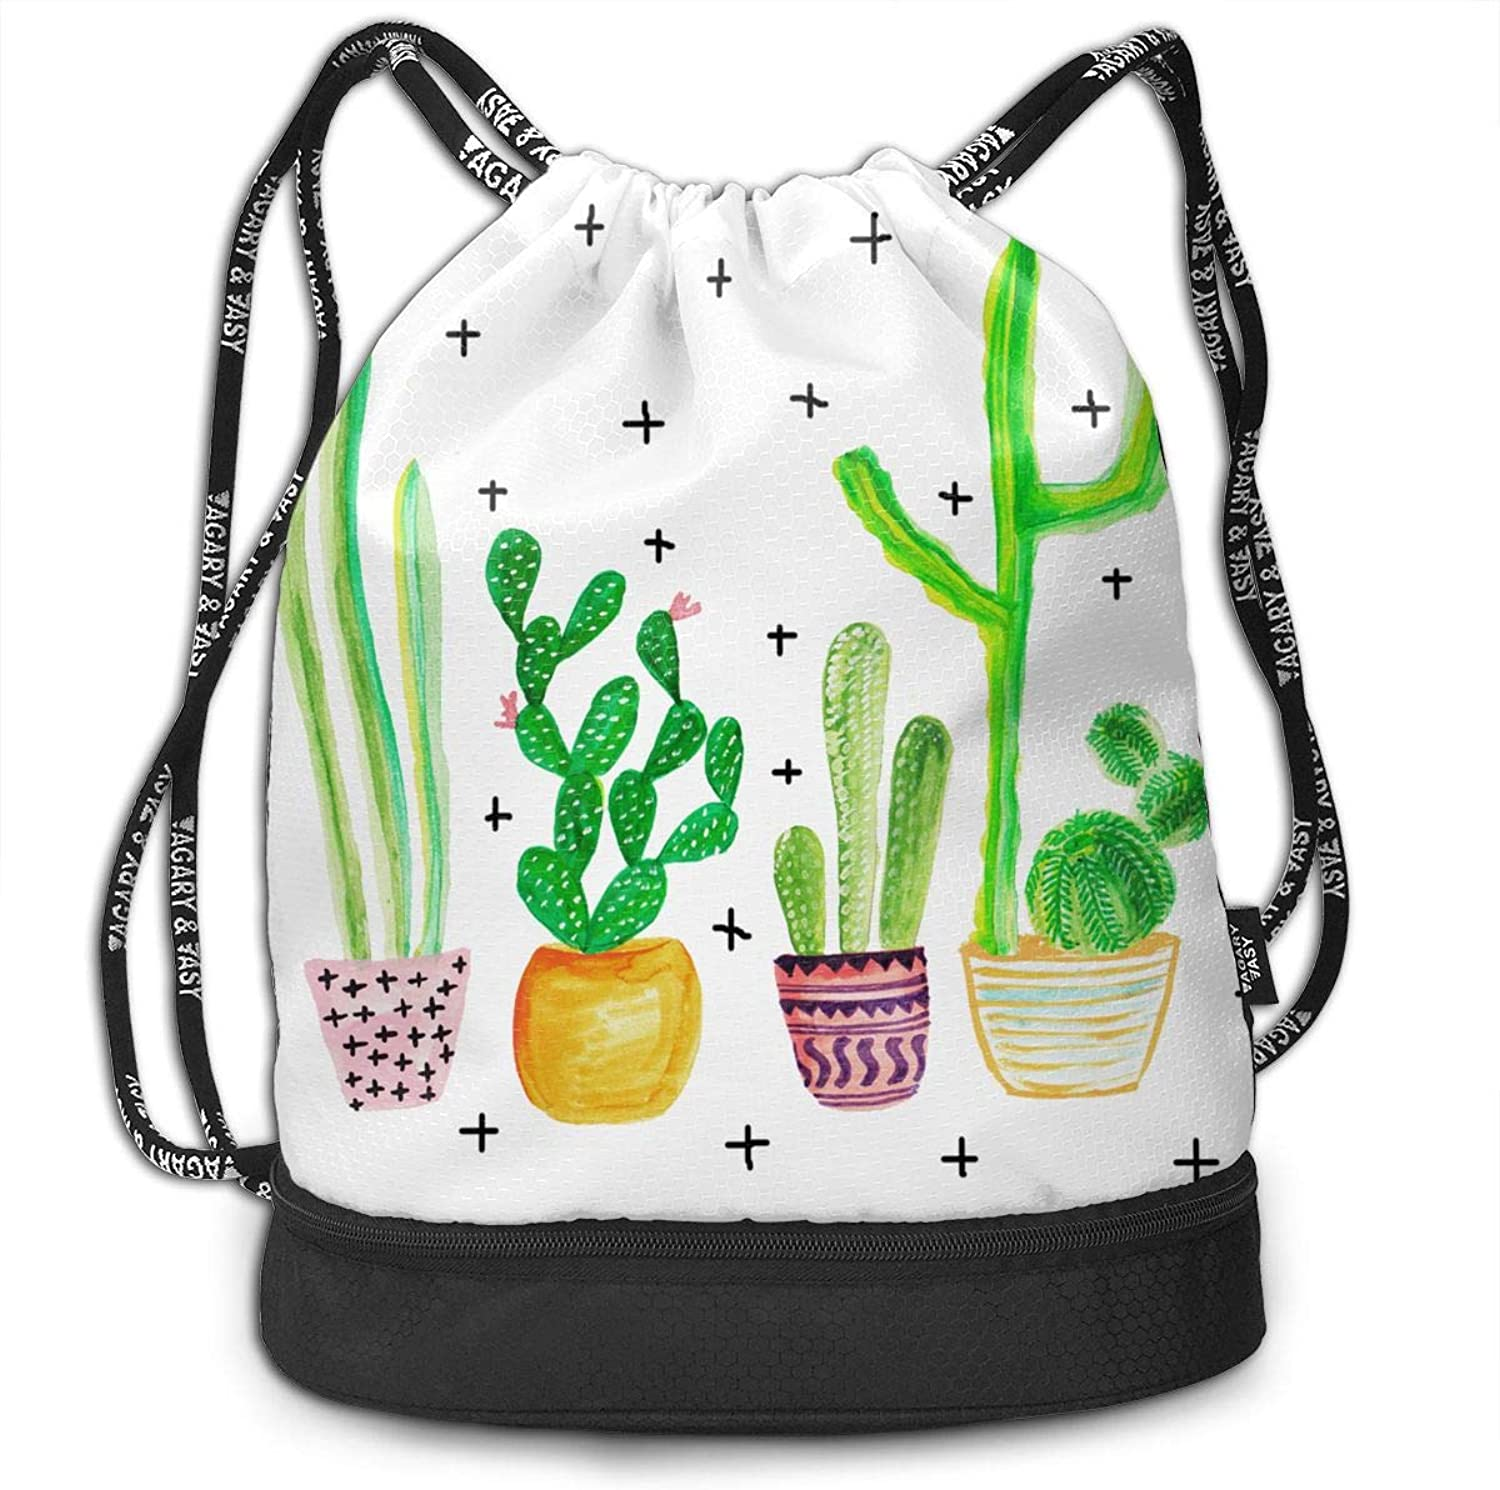 c6bf33fbd6f7 Gymsack Cactus Fresh Print Drawstring Bags Simple Shoulder Bags Gym ...